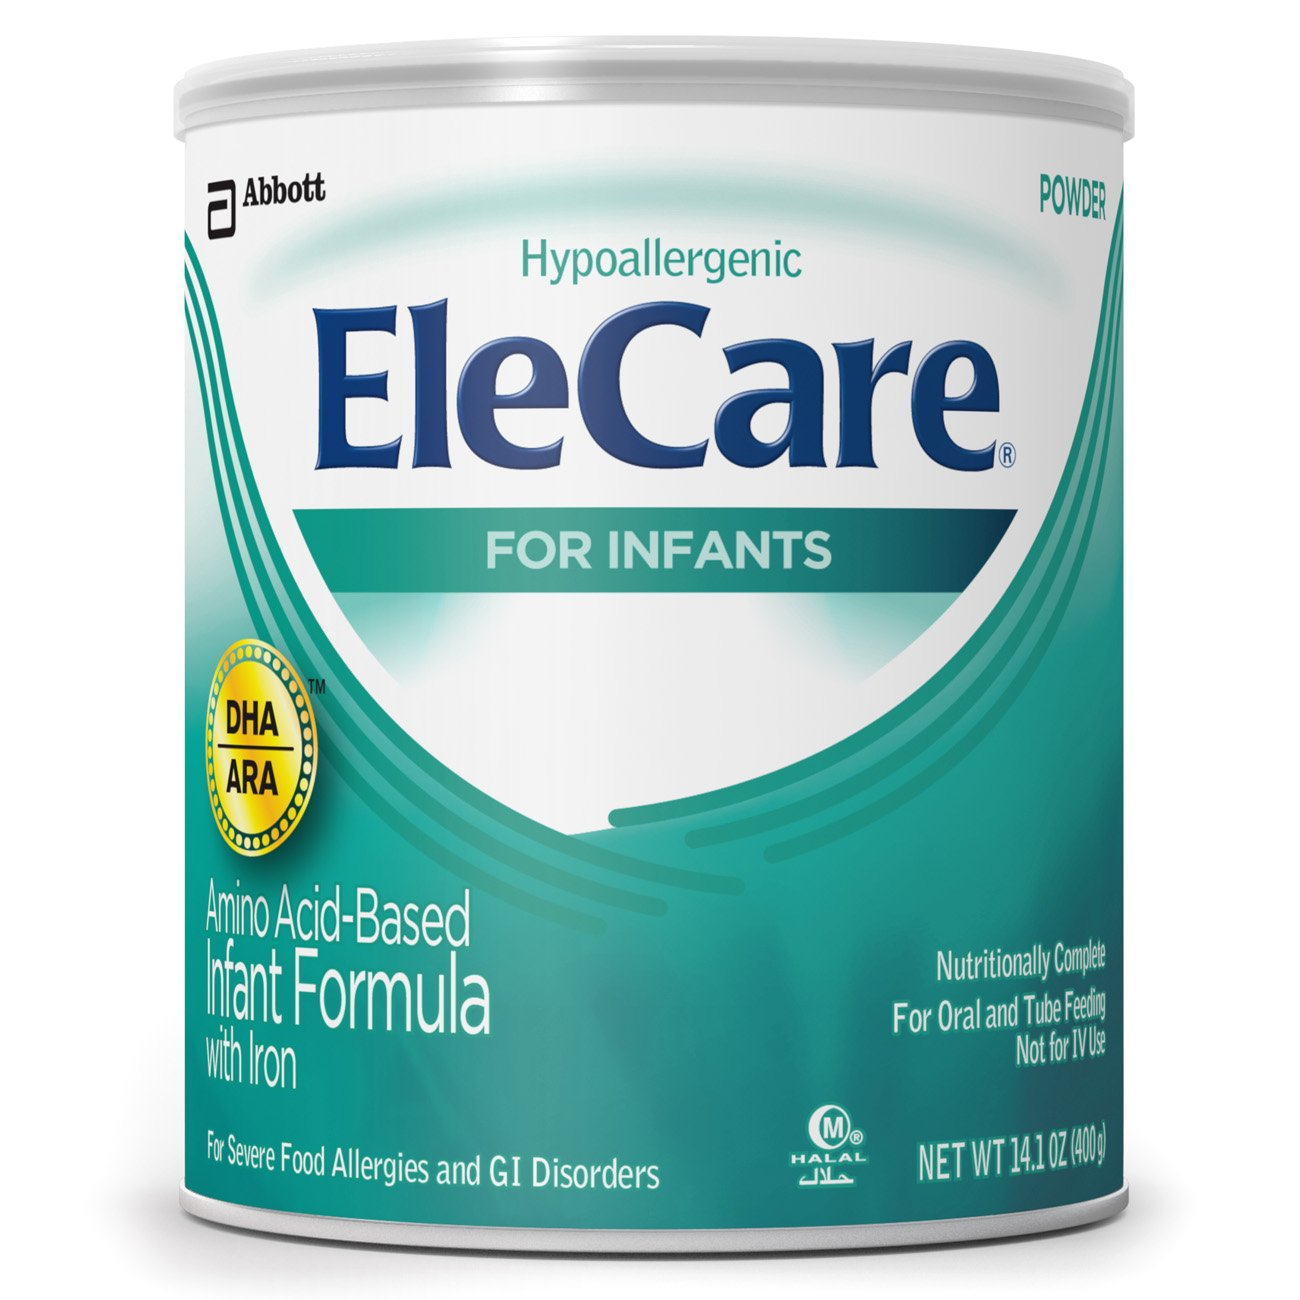 EleCare For Infants (0-12 months) Unflavored Powder with DHA/ARA, 1 Can 14.1OZ (Packaging may vary) 55251